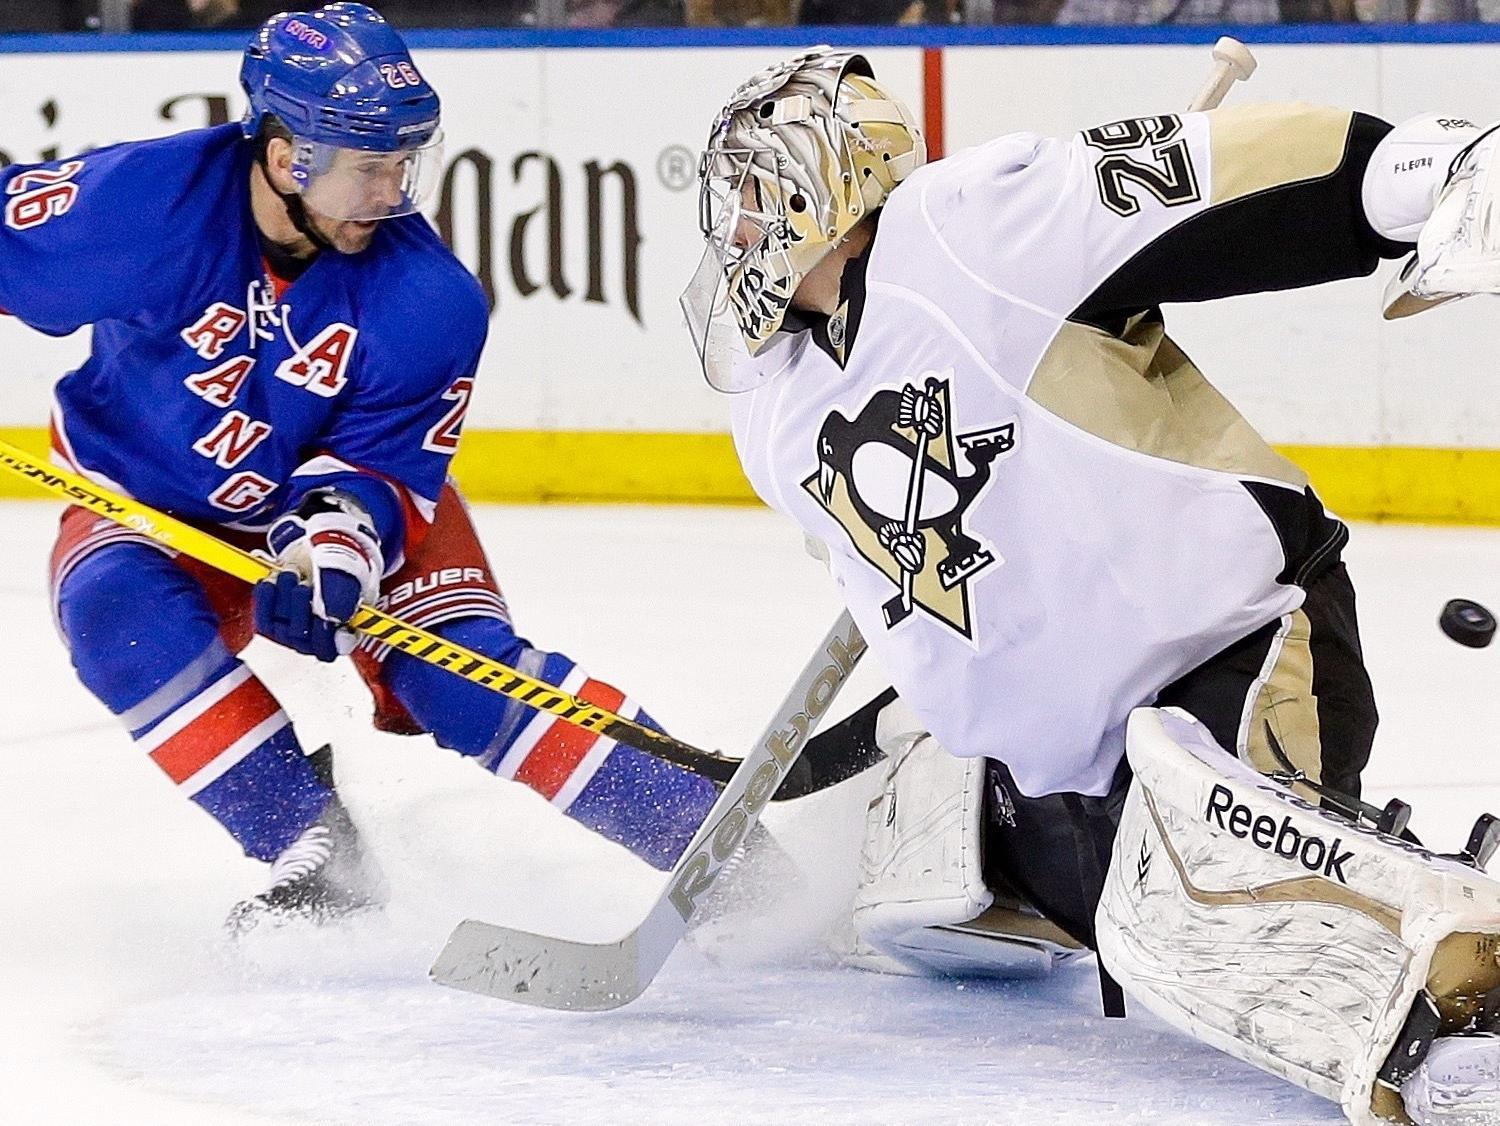 rangers vs penguins nhl 2015 stanley cup images